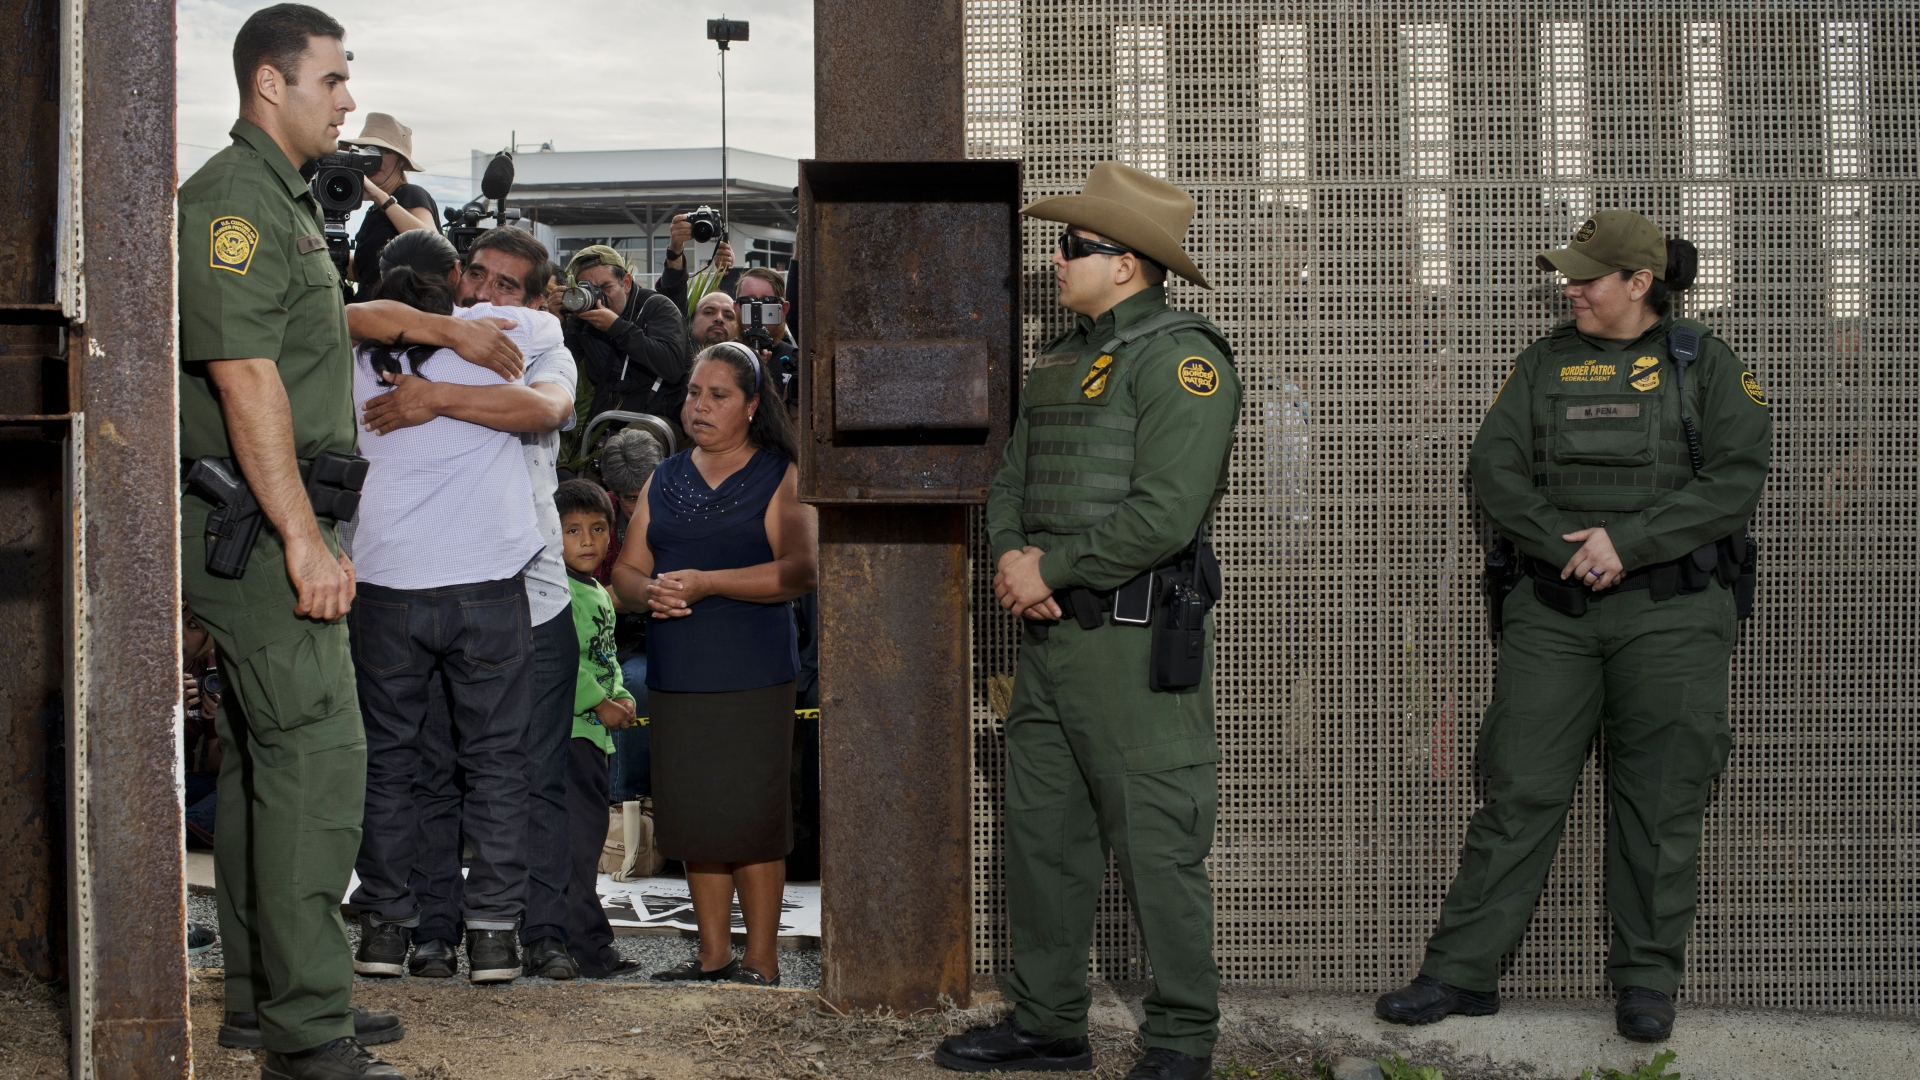 Border-patrol agents guarding the U.S. side of the Mexican border at San Diego open the gate to let six families unite and hug for three minutes each before closing the gate again. The event is organized by Border Angels, a migrant-advocacy group. (Credit: Carolyn Drake/Magnum)